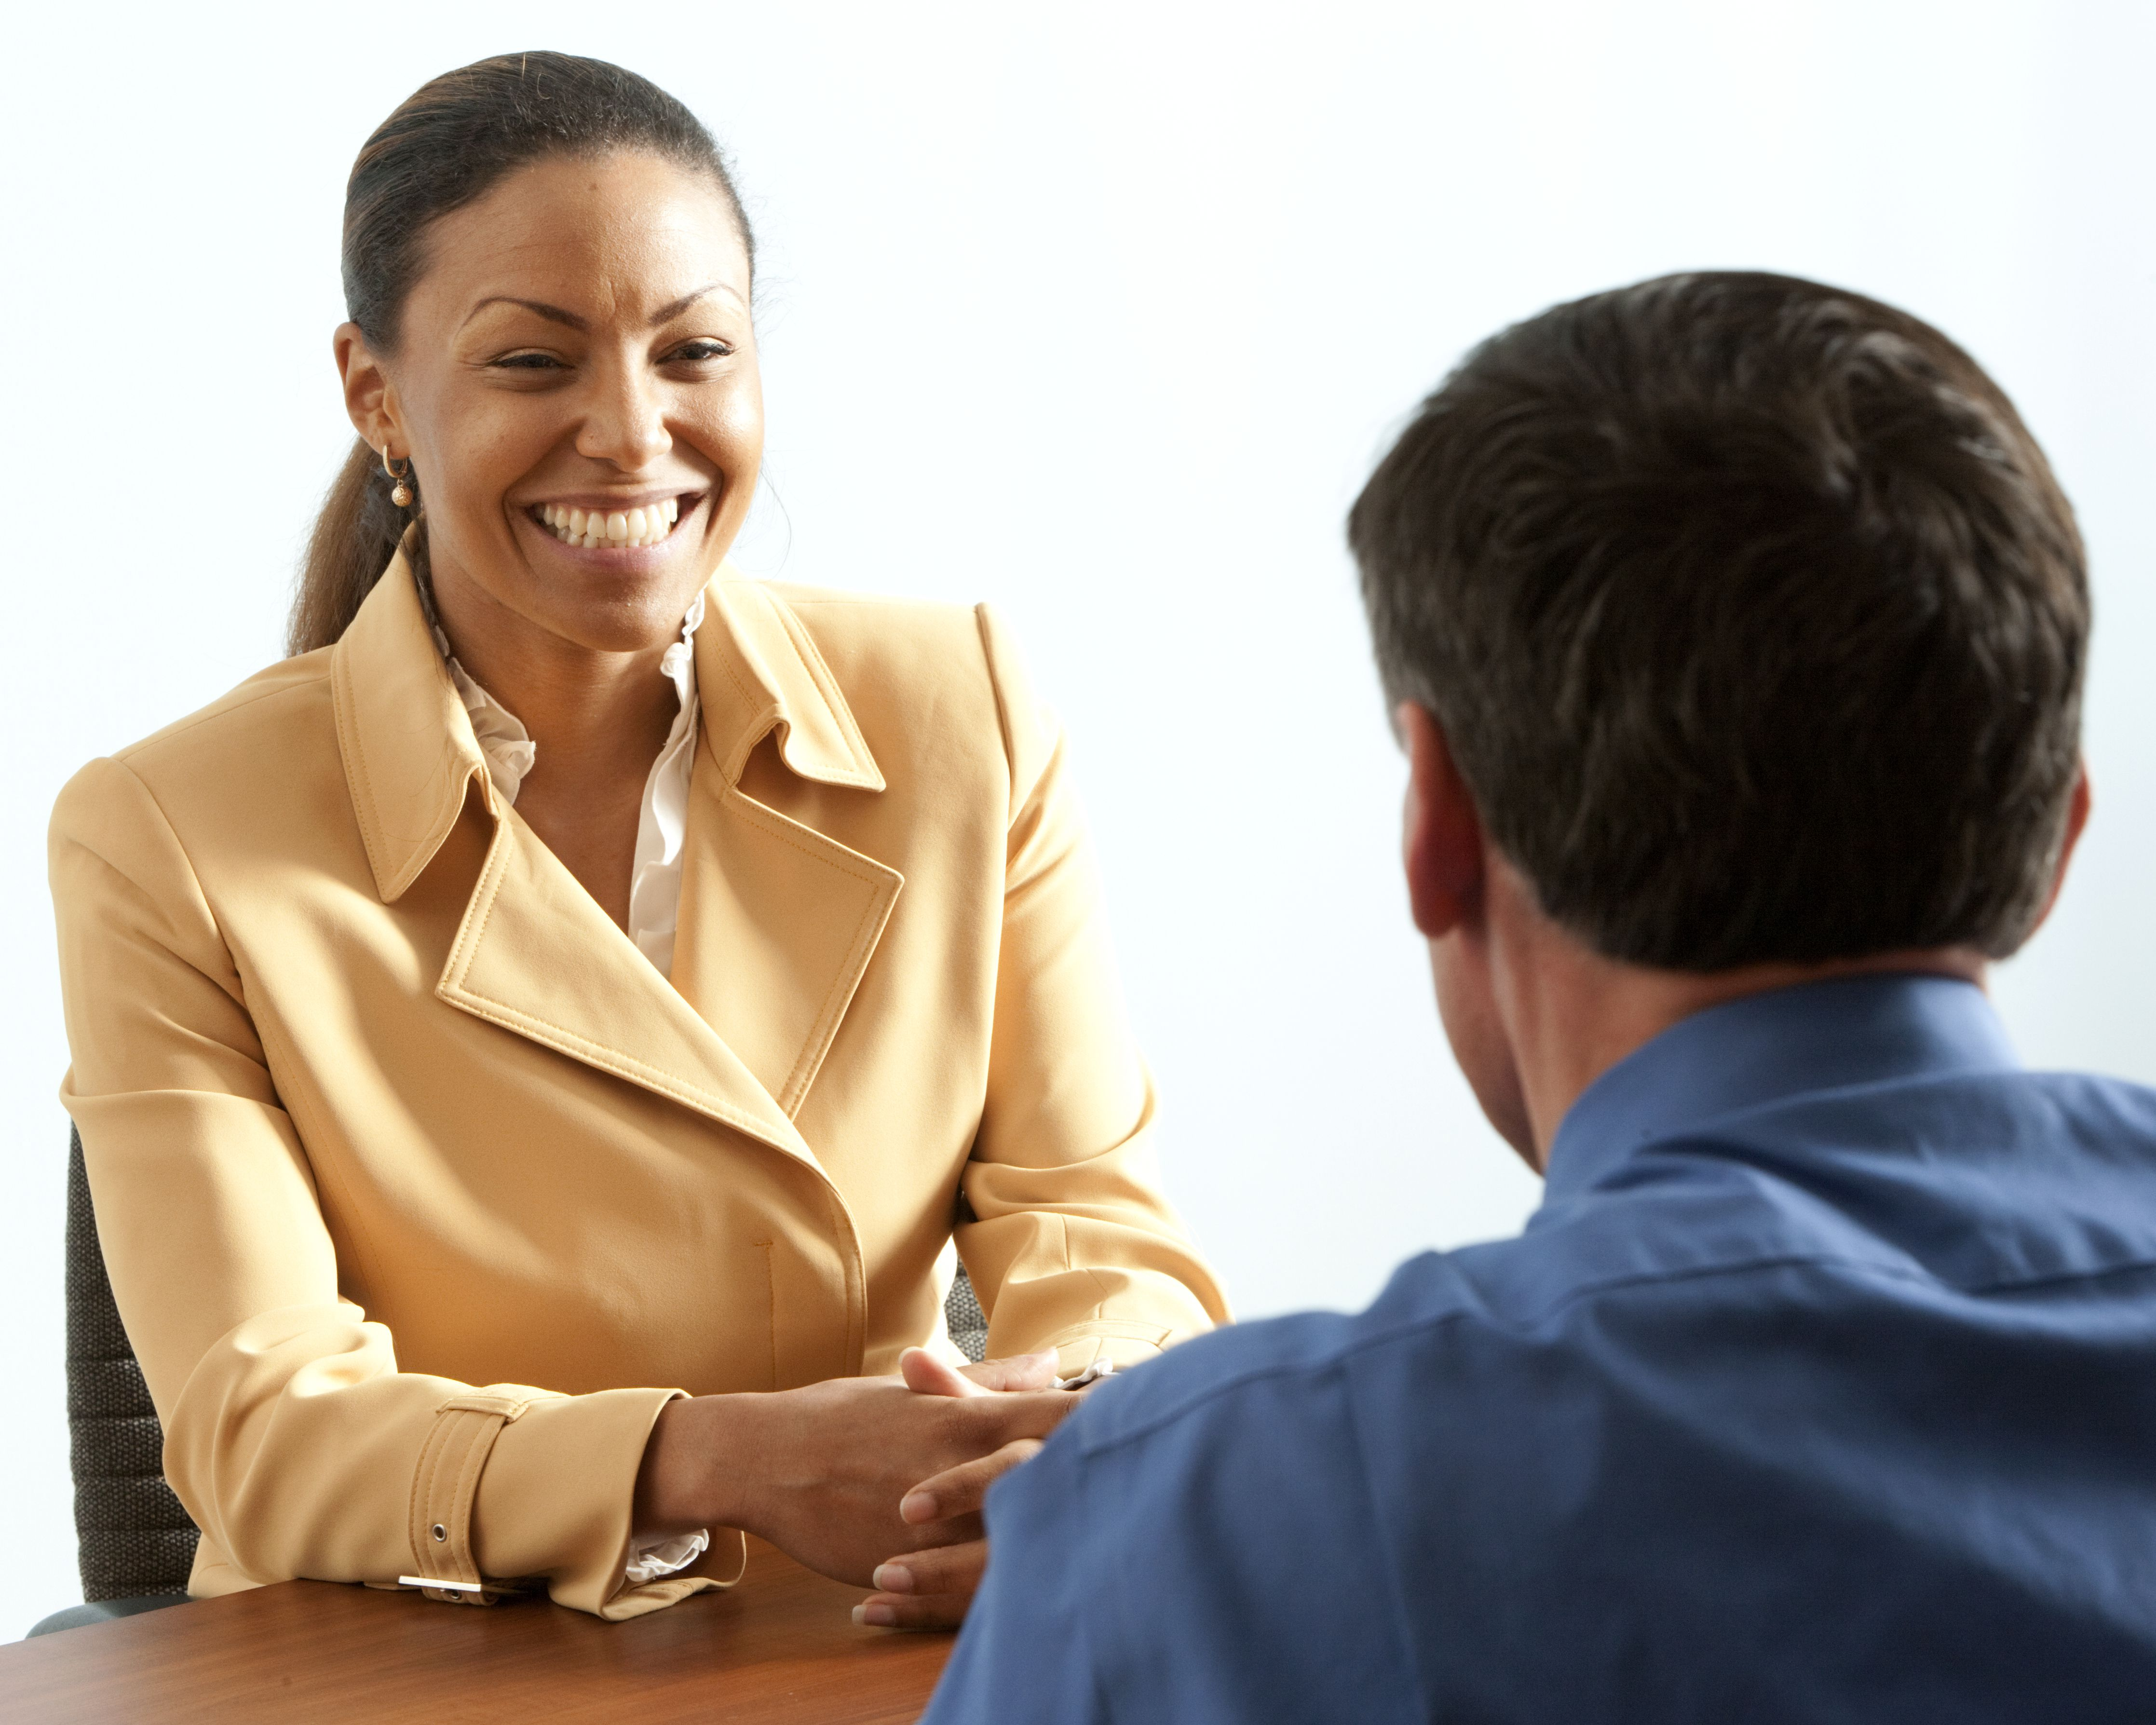 personal interview questions and sample answers - International Job Interviewing What Are The Cultural Differences